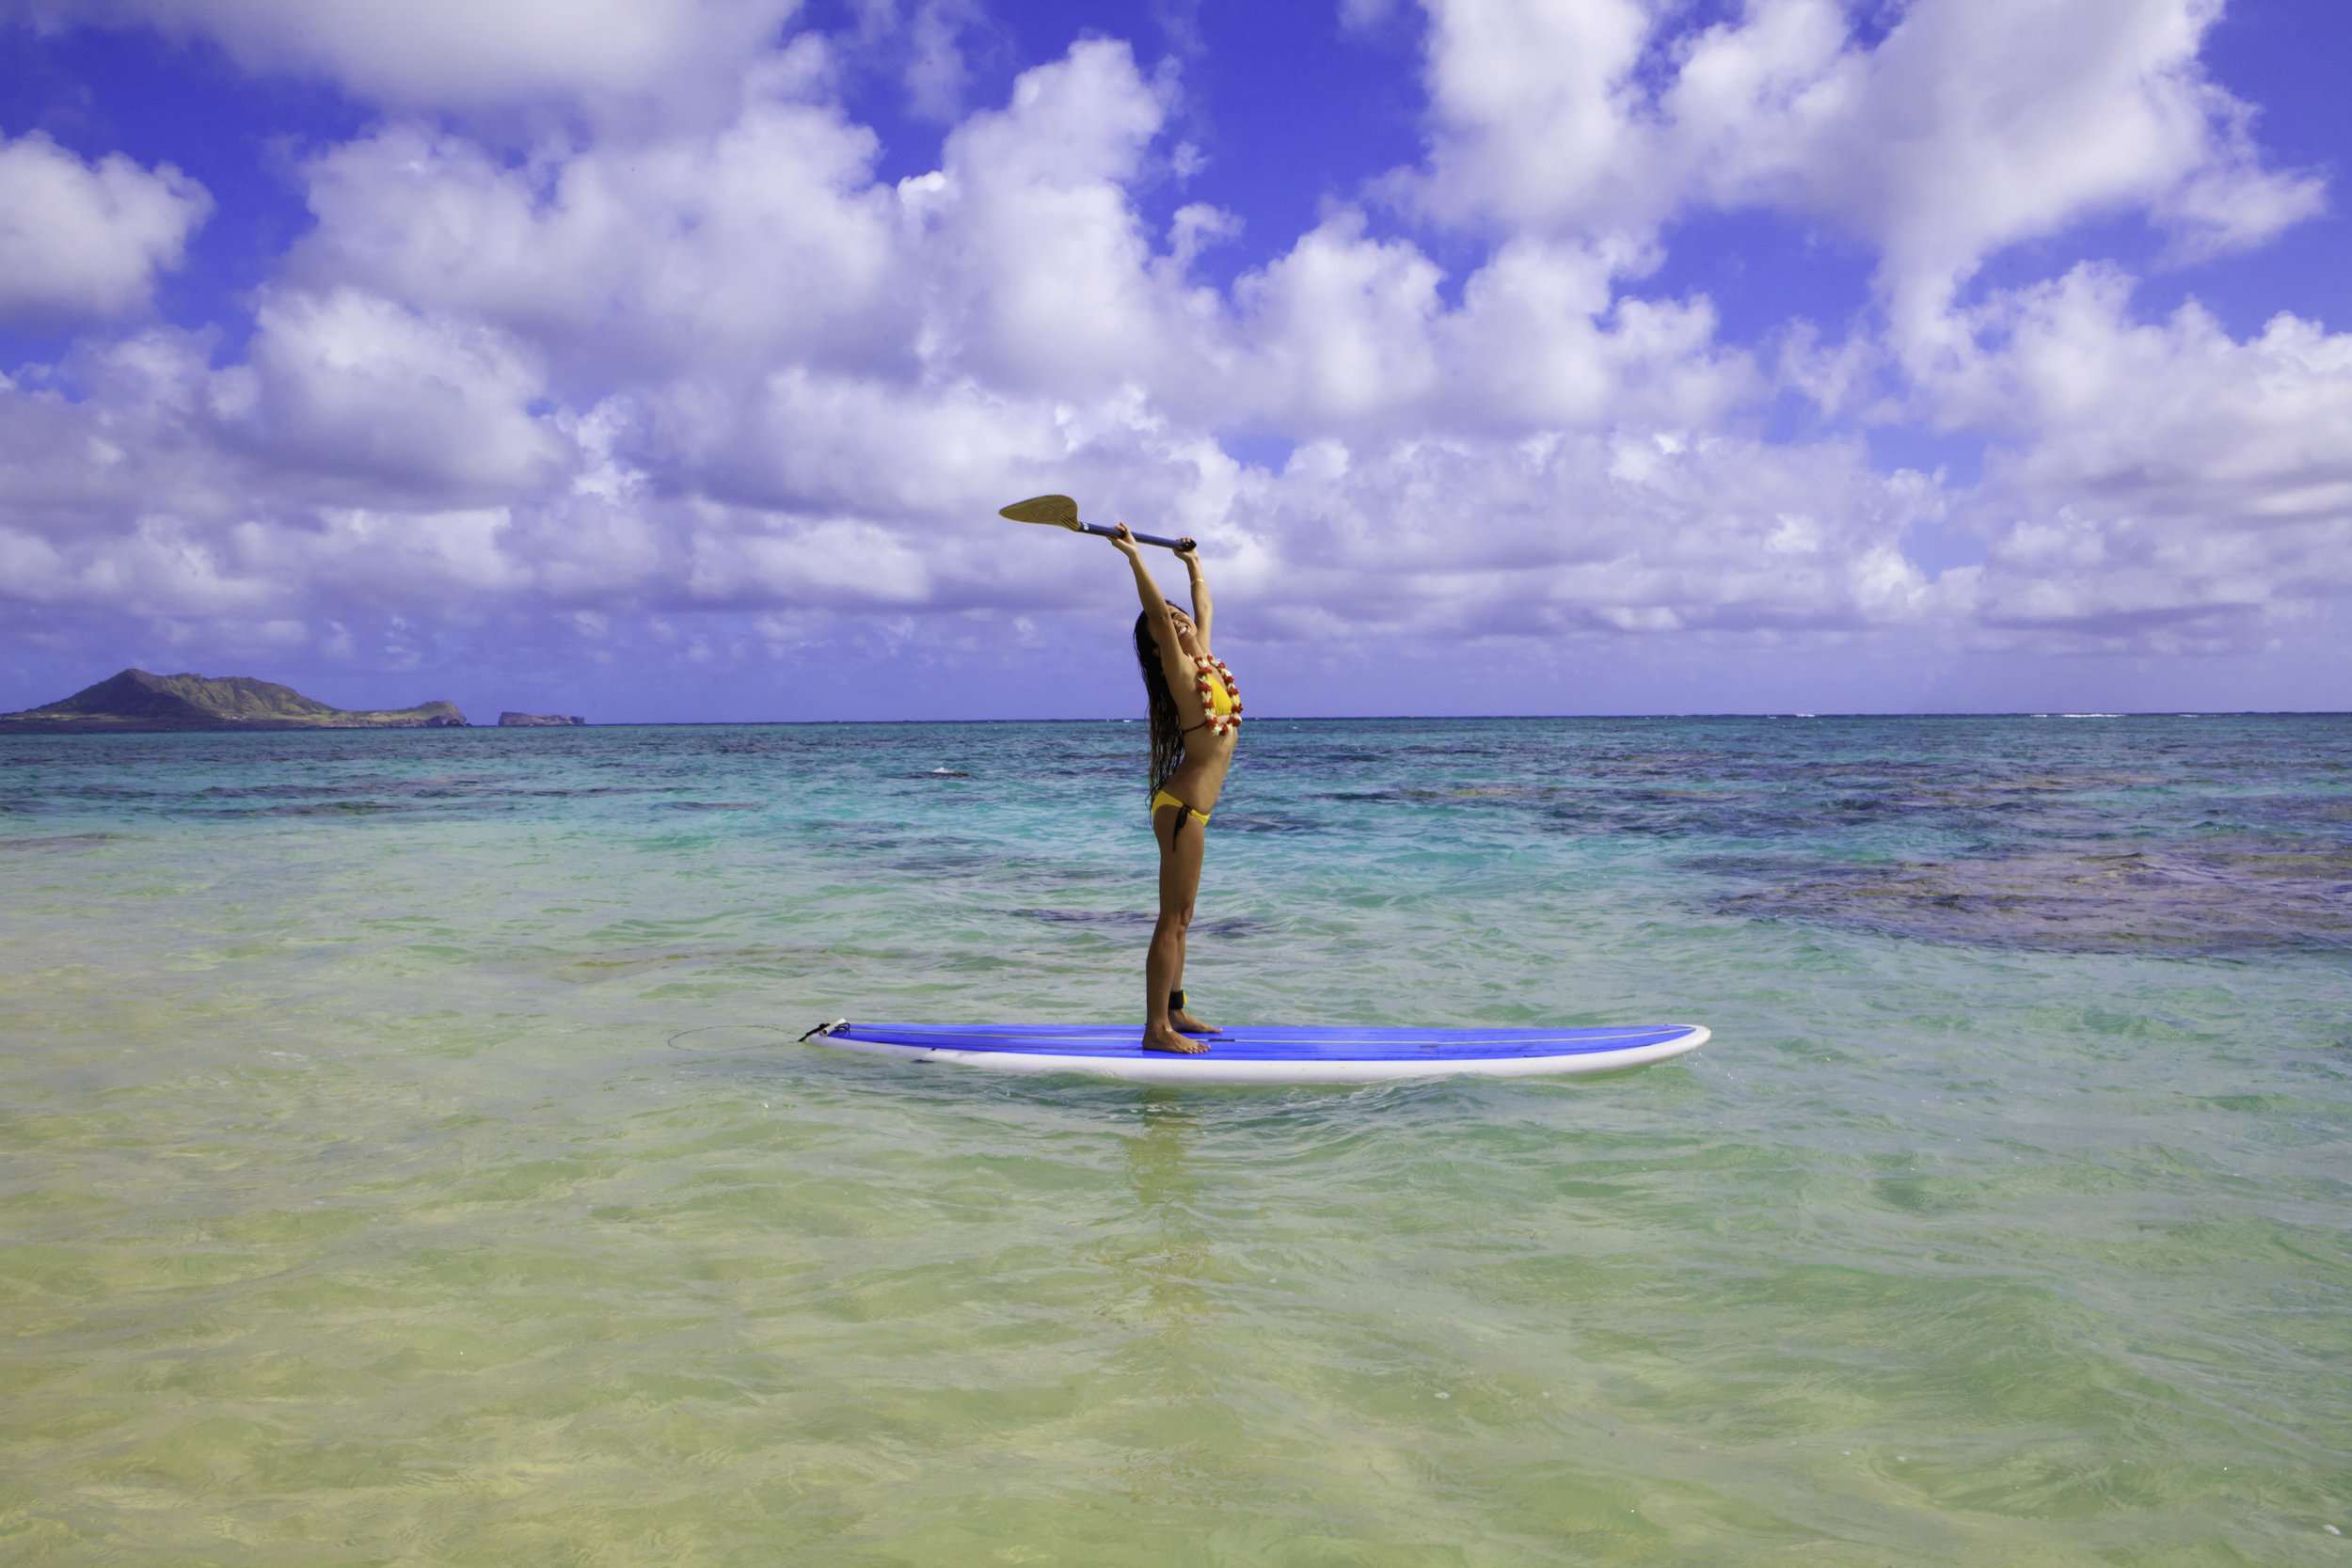 $59 - Stand up paddle board rentals